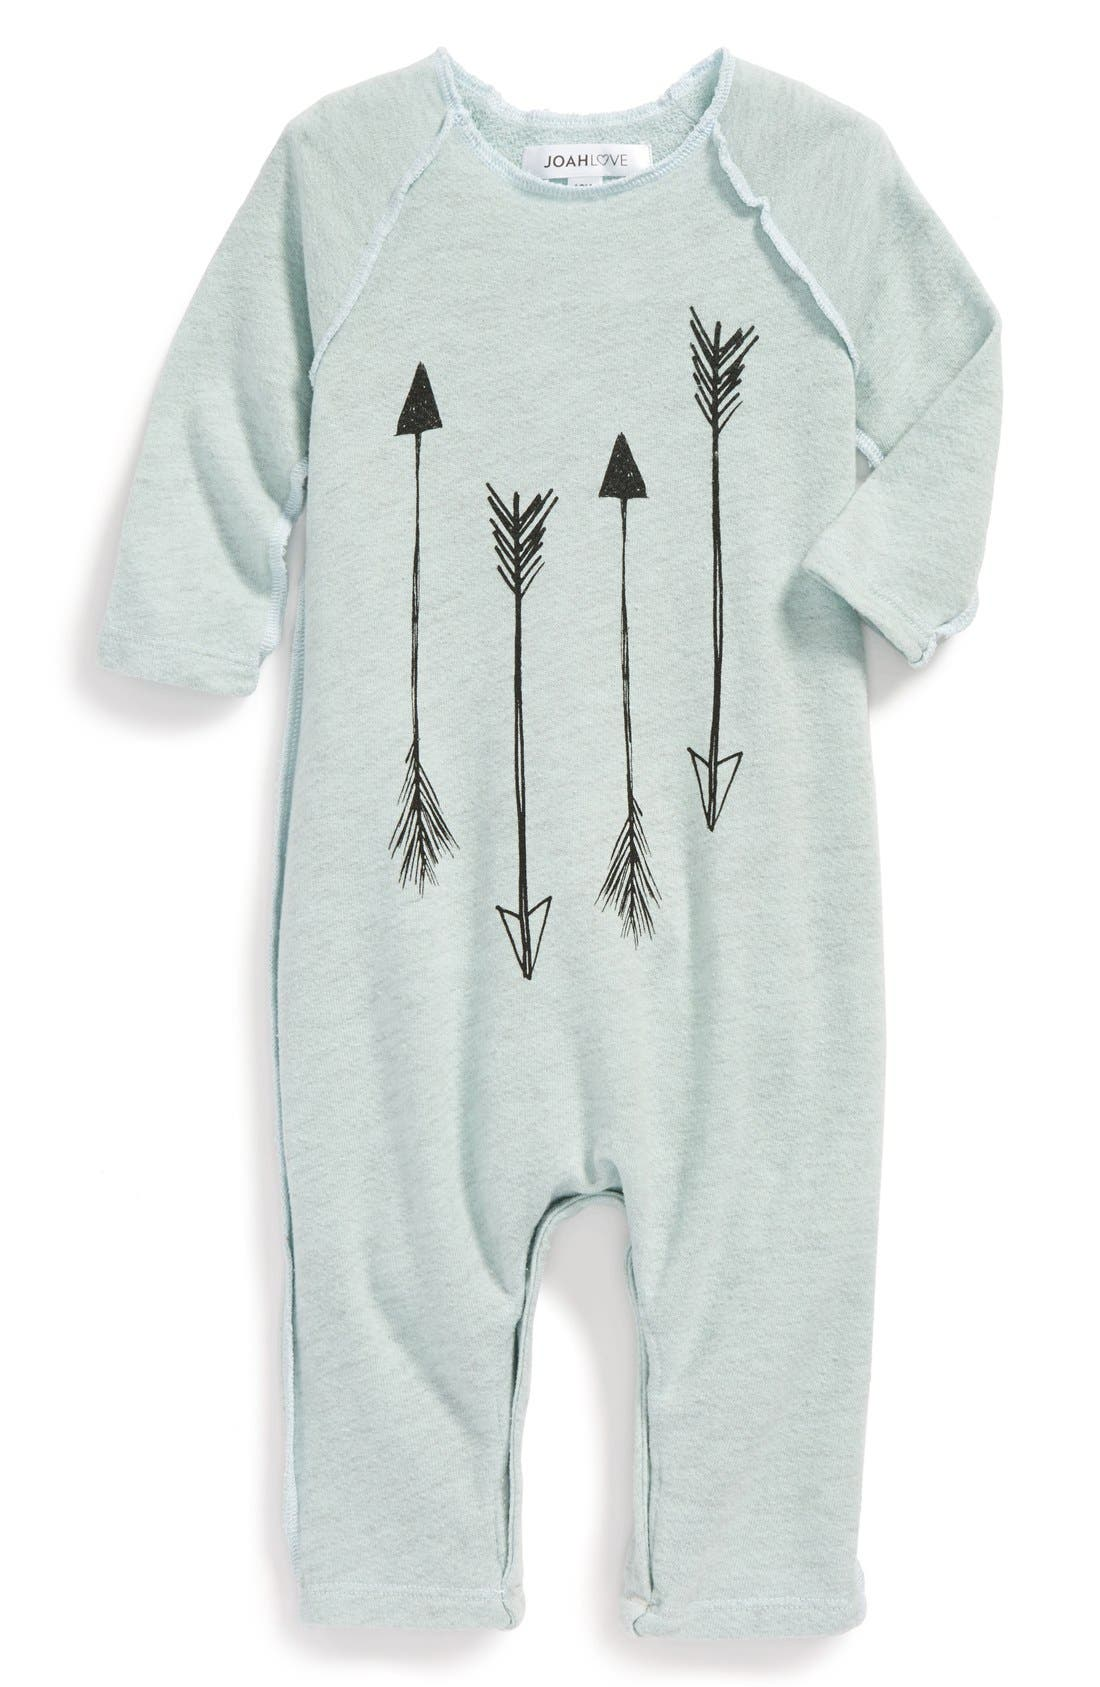 Alternate Image 1 Selected - Joah Love French Terry Romper (Baby Boys)